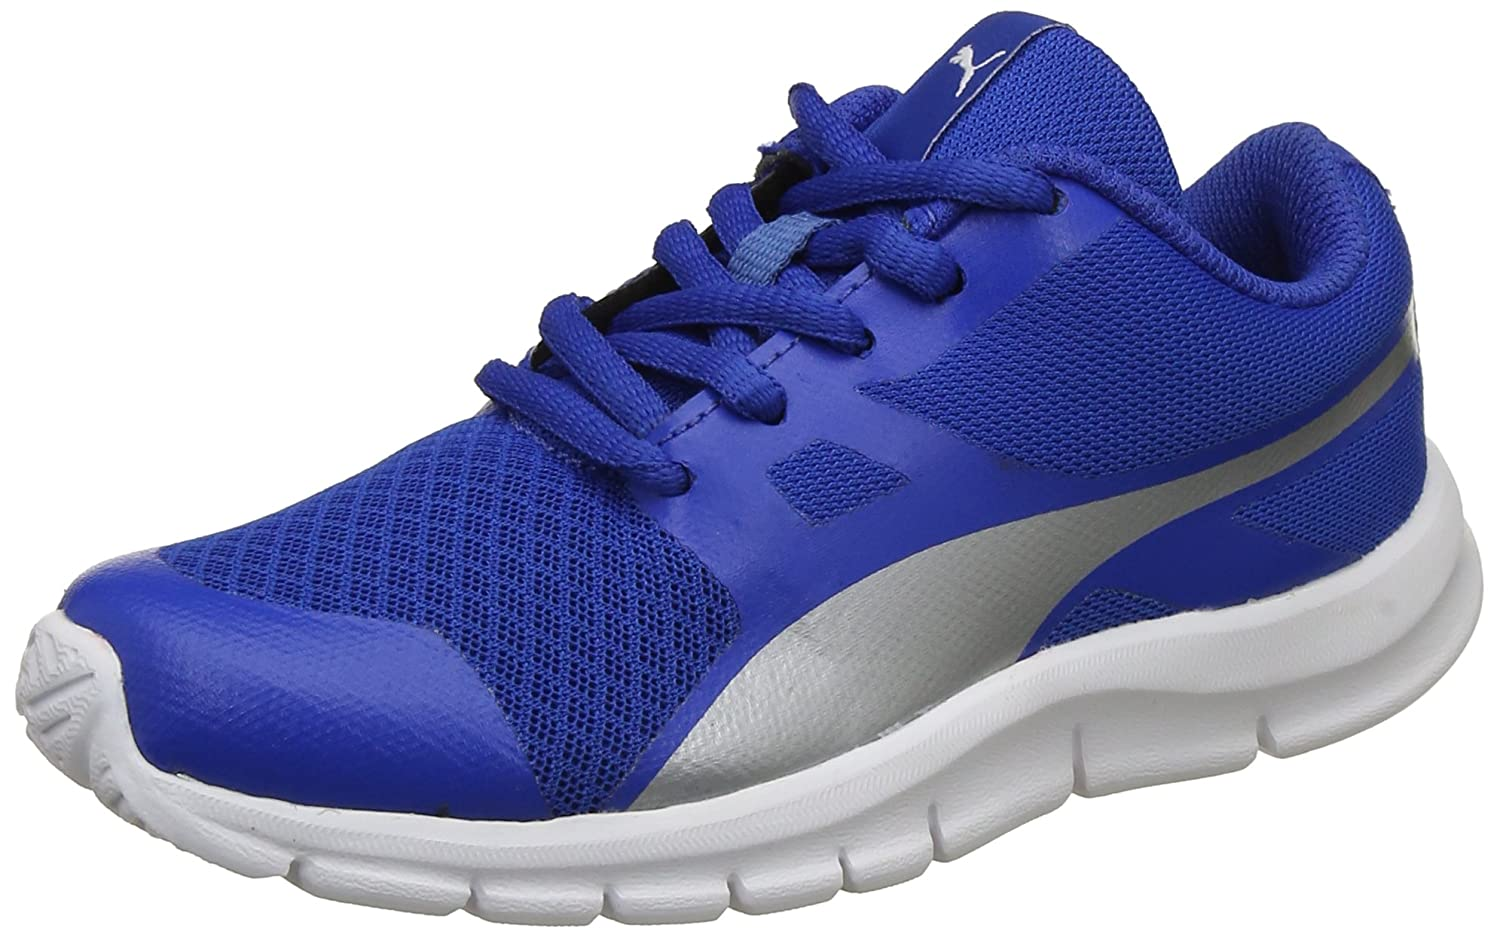 Amazon - Puma Unisex's Sneakers At Rs.619 (79% OFF)